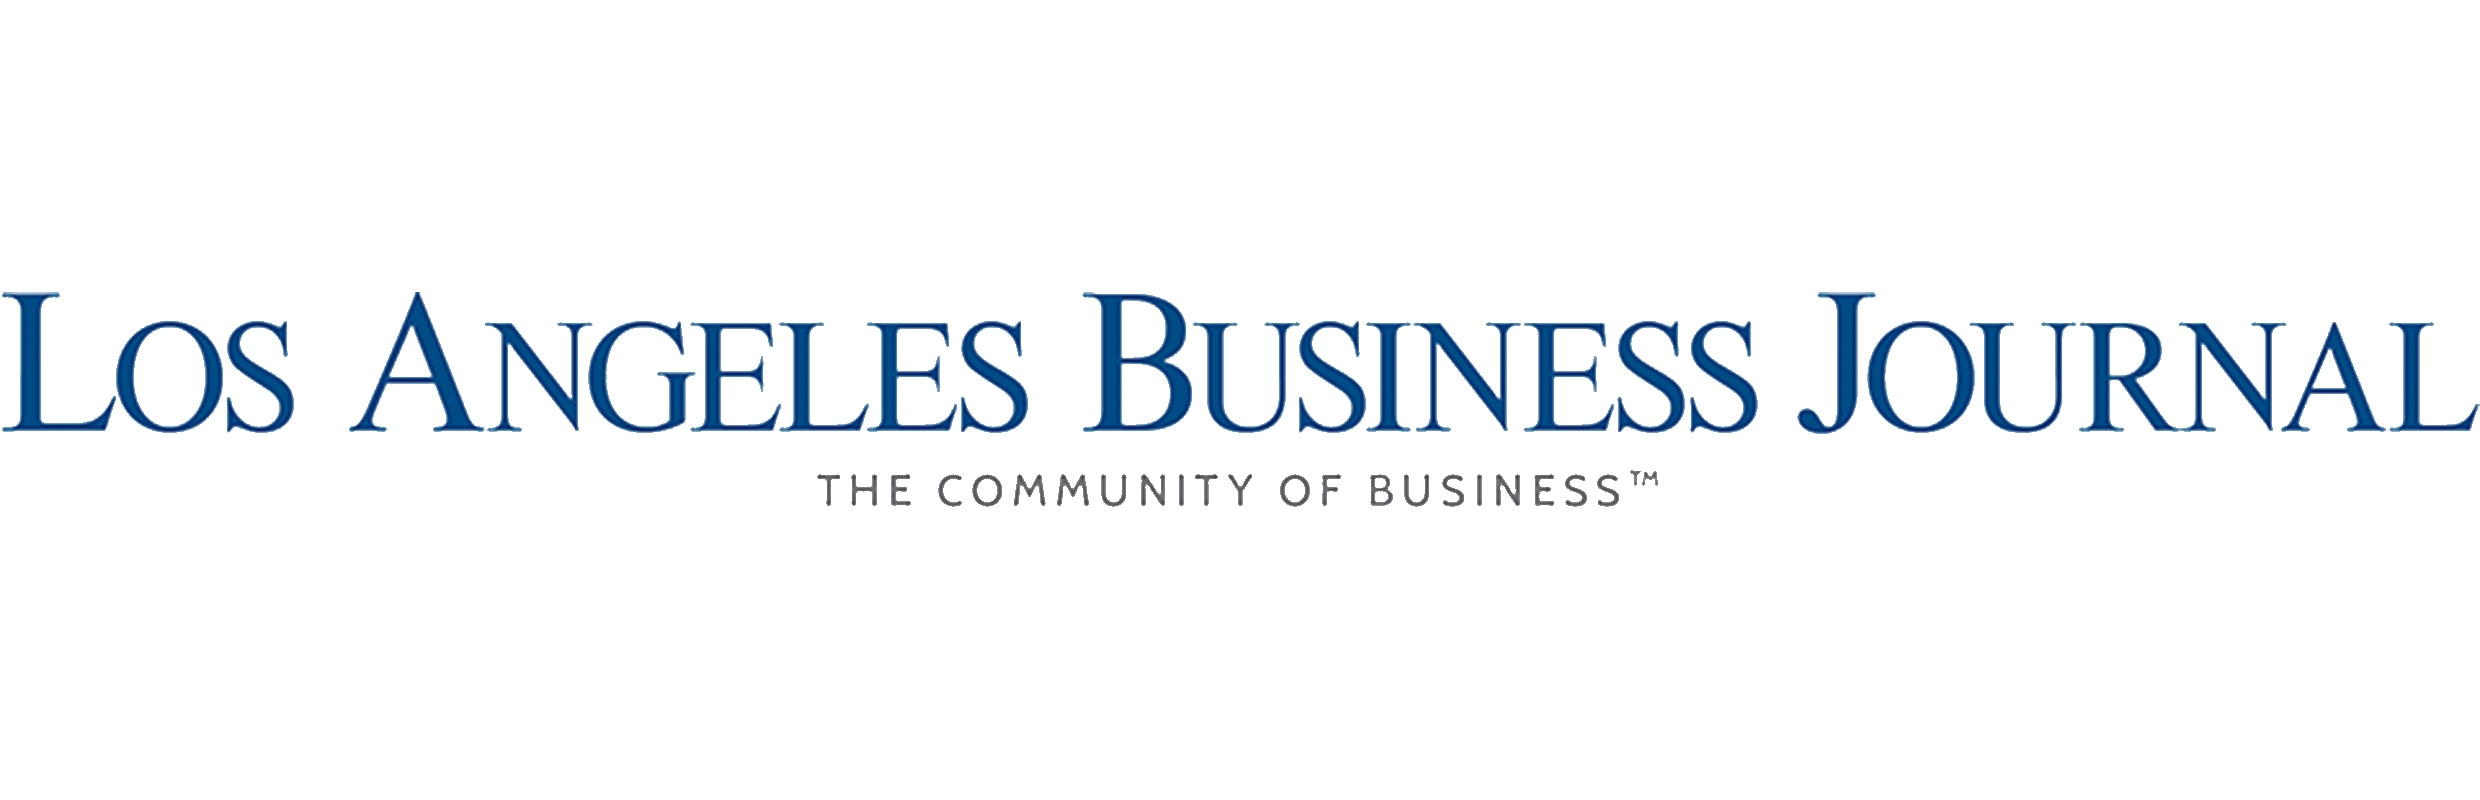 La business journal selected